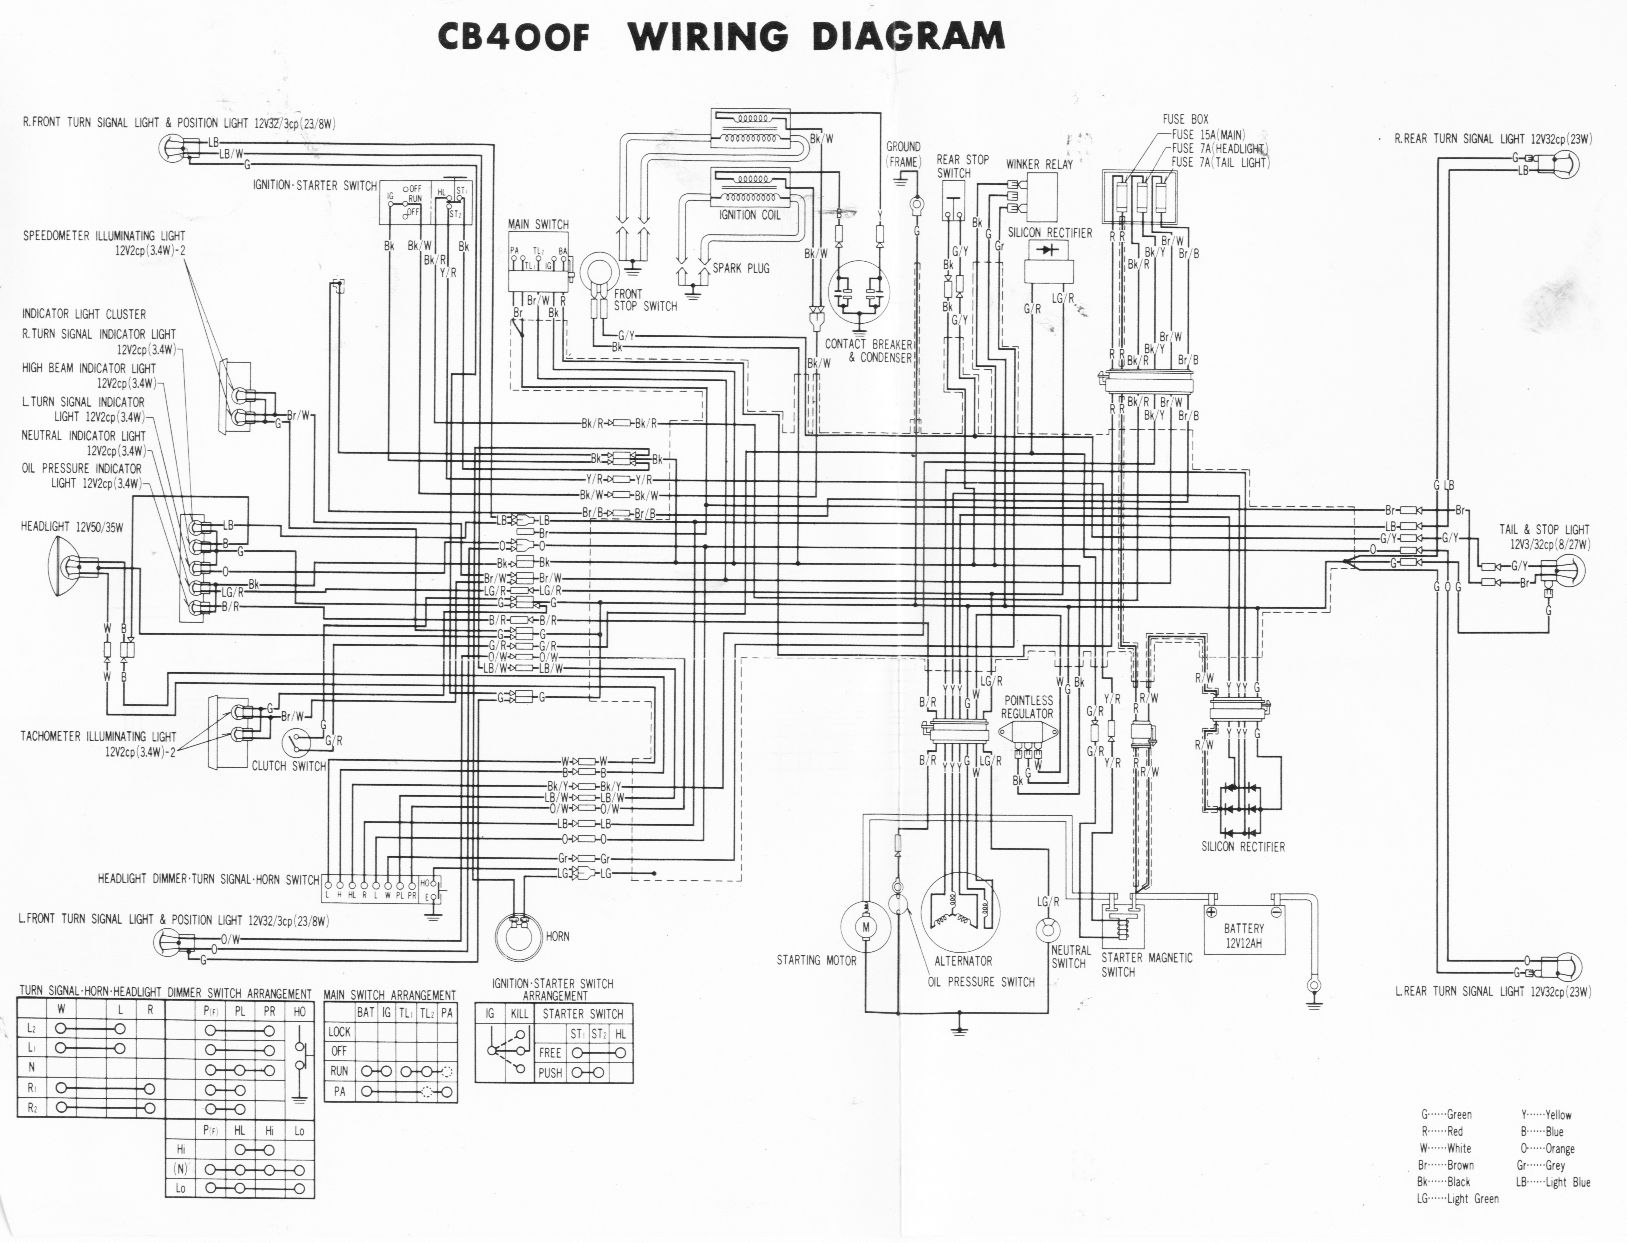 honda cb400 wiring diagram schematics and wiring diagrams honda cm400e wiring diagram diagrams and schematics